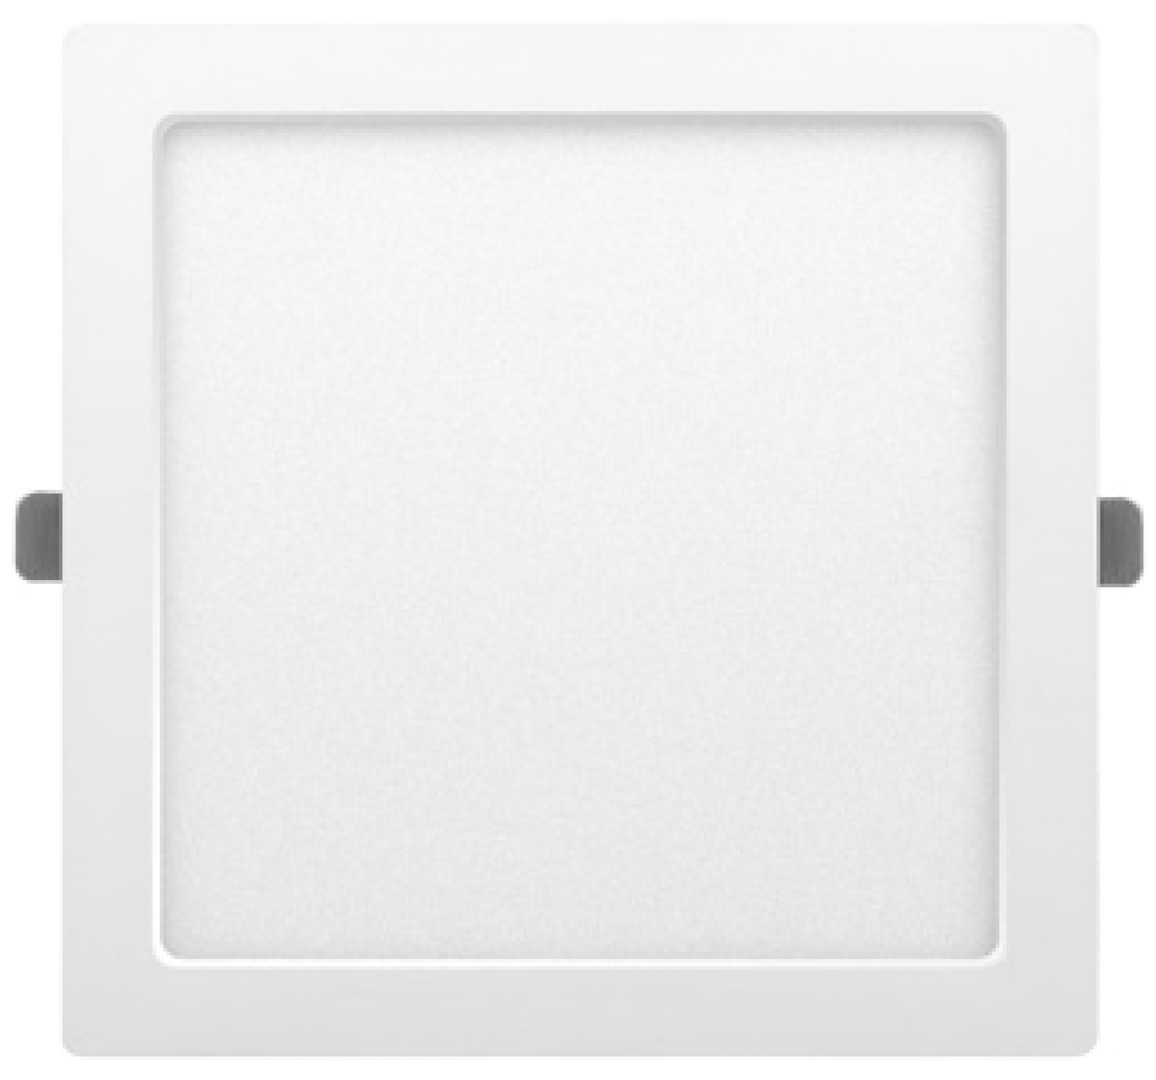 Downlight Led cuadrado empotrable o superficie Monet blanco 24W 4000°K 291x291mm. (ALG 67657)